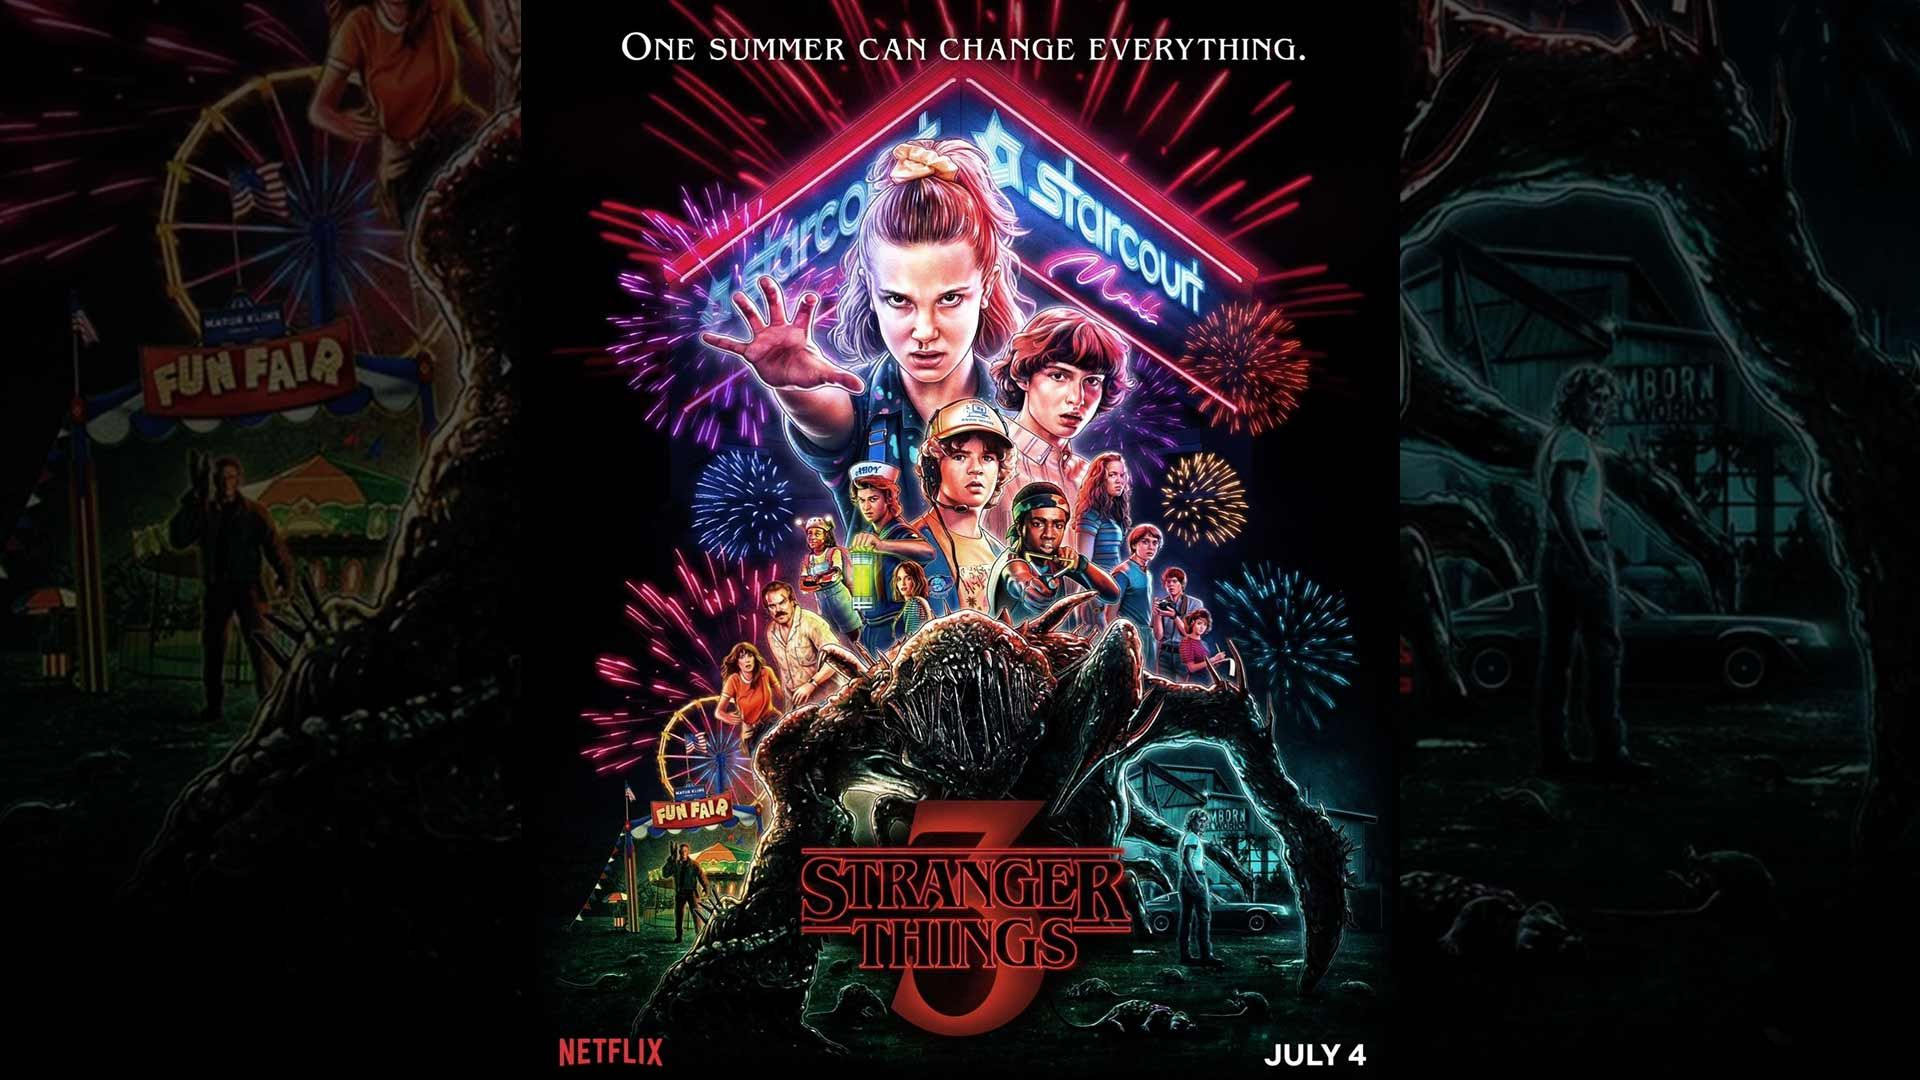 Stranger Things Poster Reveals An Unexpected Character May Be